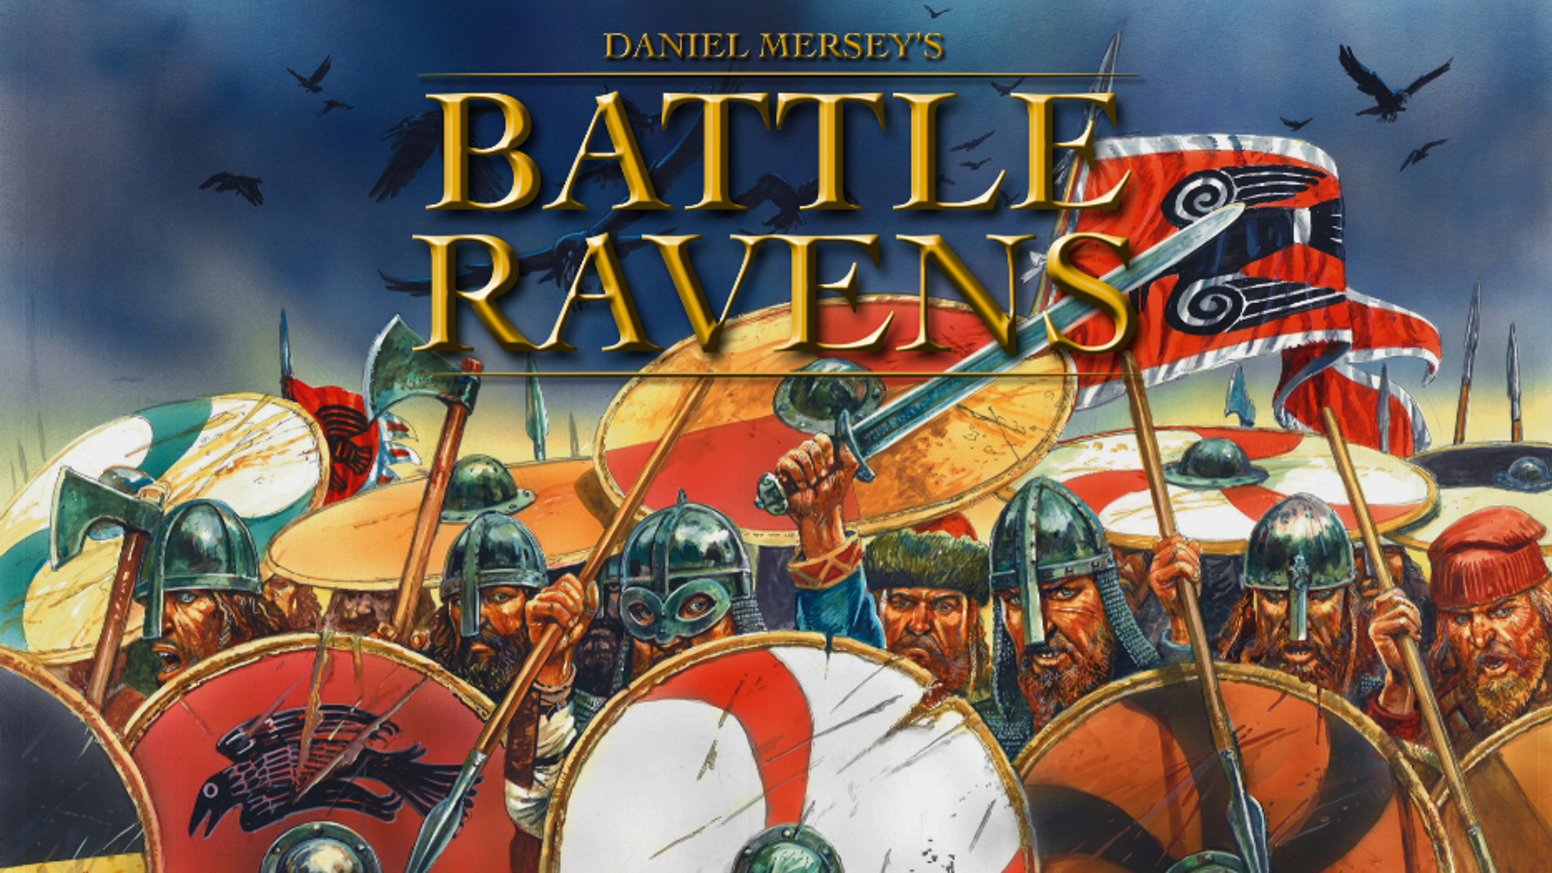 Battle Ravens is a game of Viking Age shieldwall warfare, designed by Daniel Mersey and illustrated by Peter Dennis!